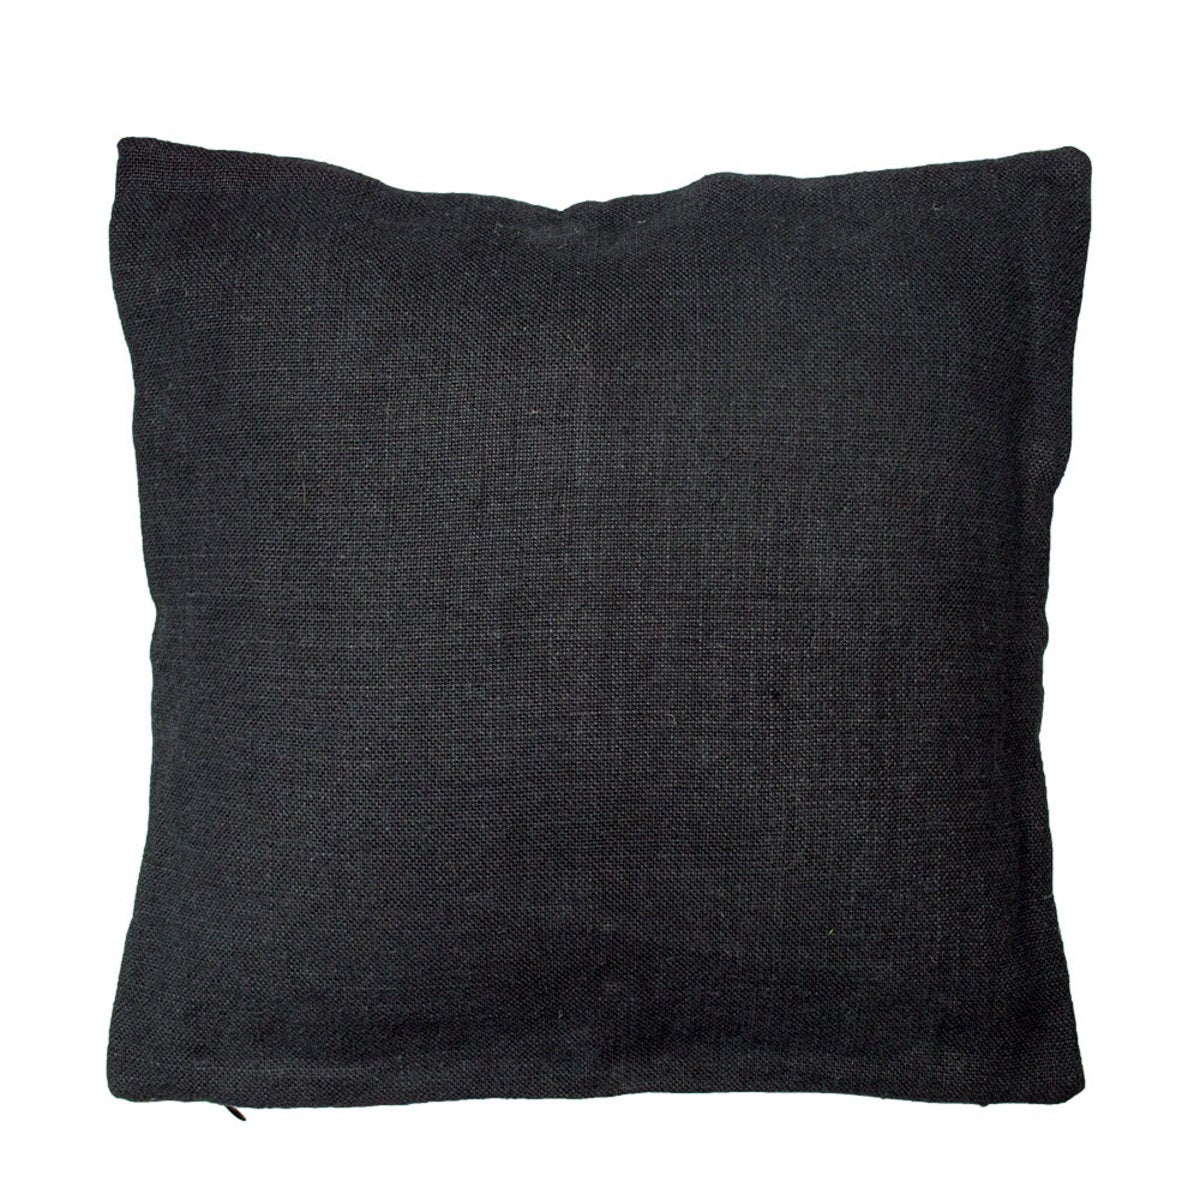 "100% Pure Linen Pillow Cover 24"" x 24"" - Coal"